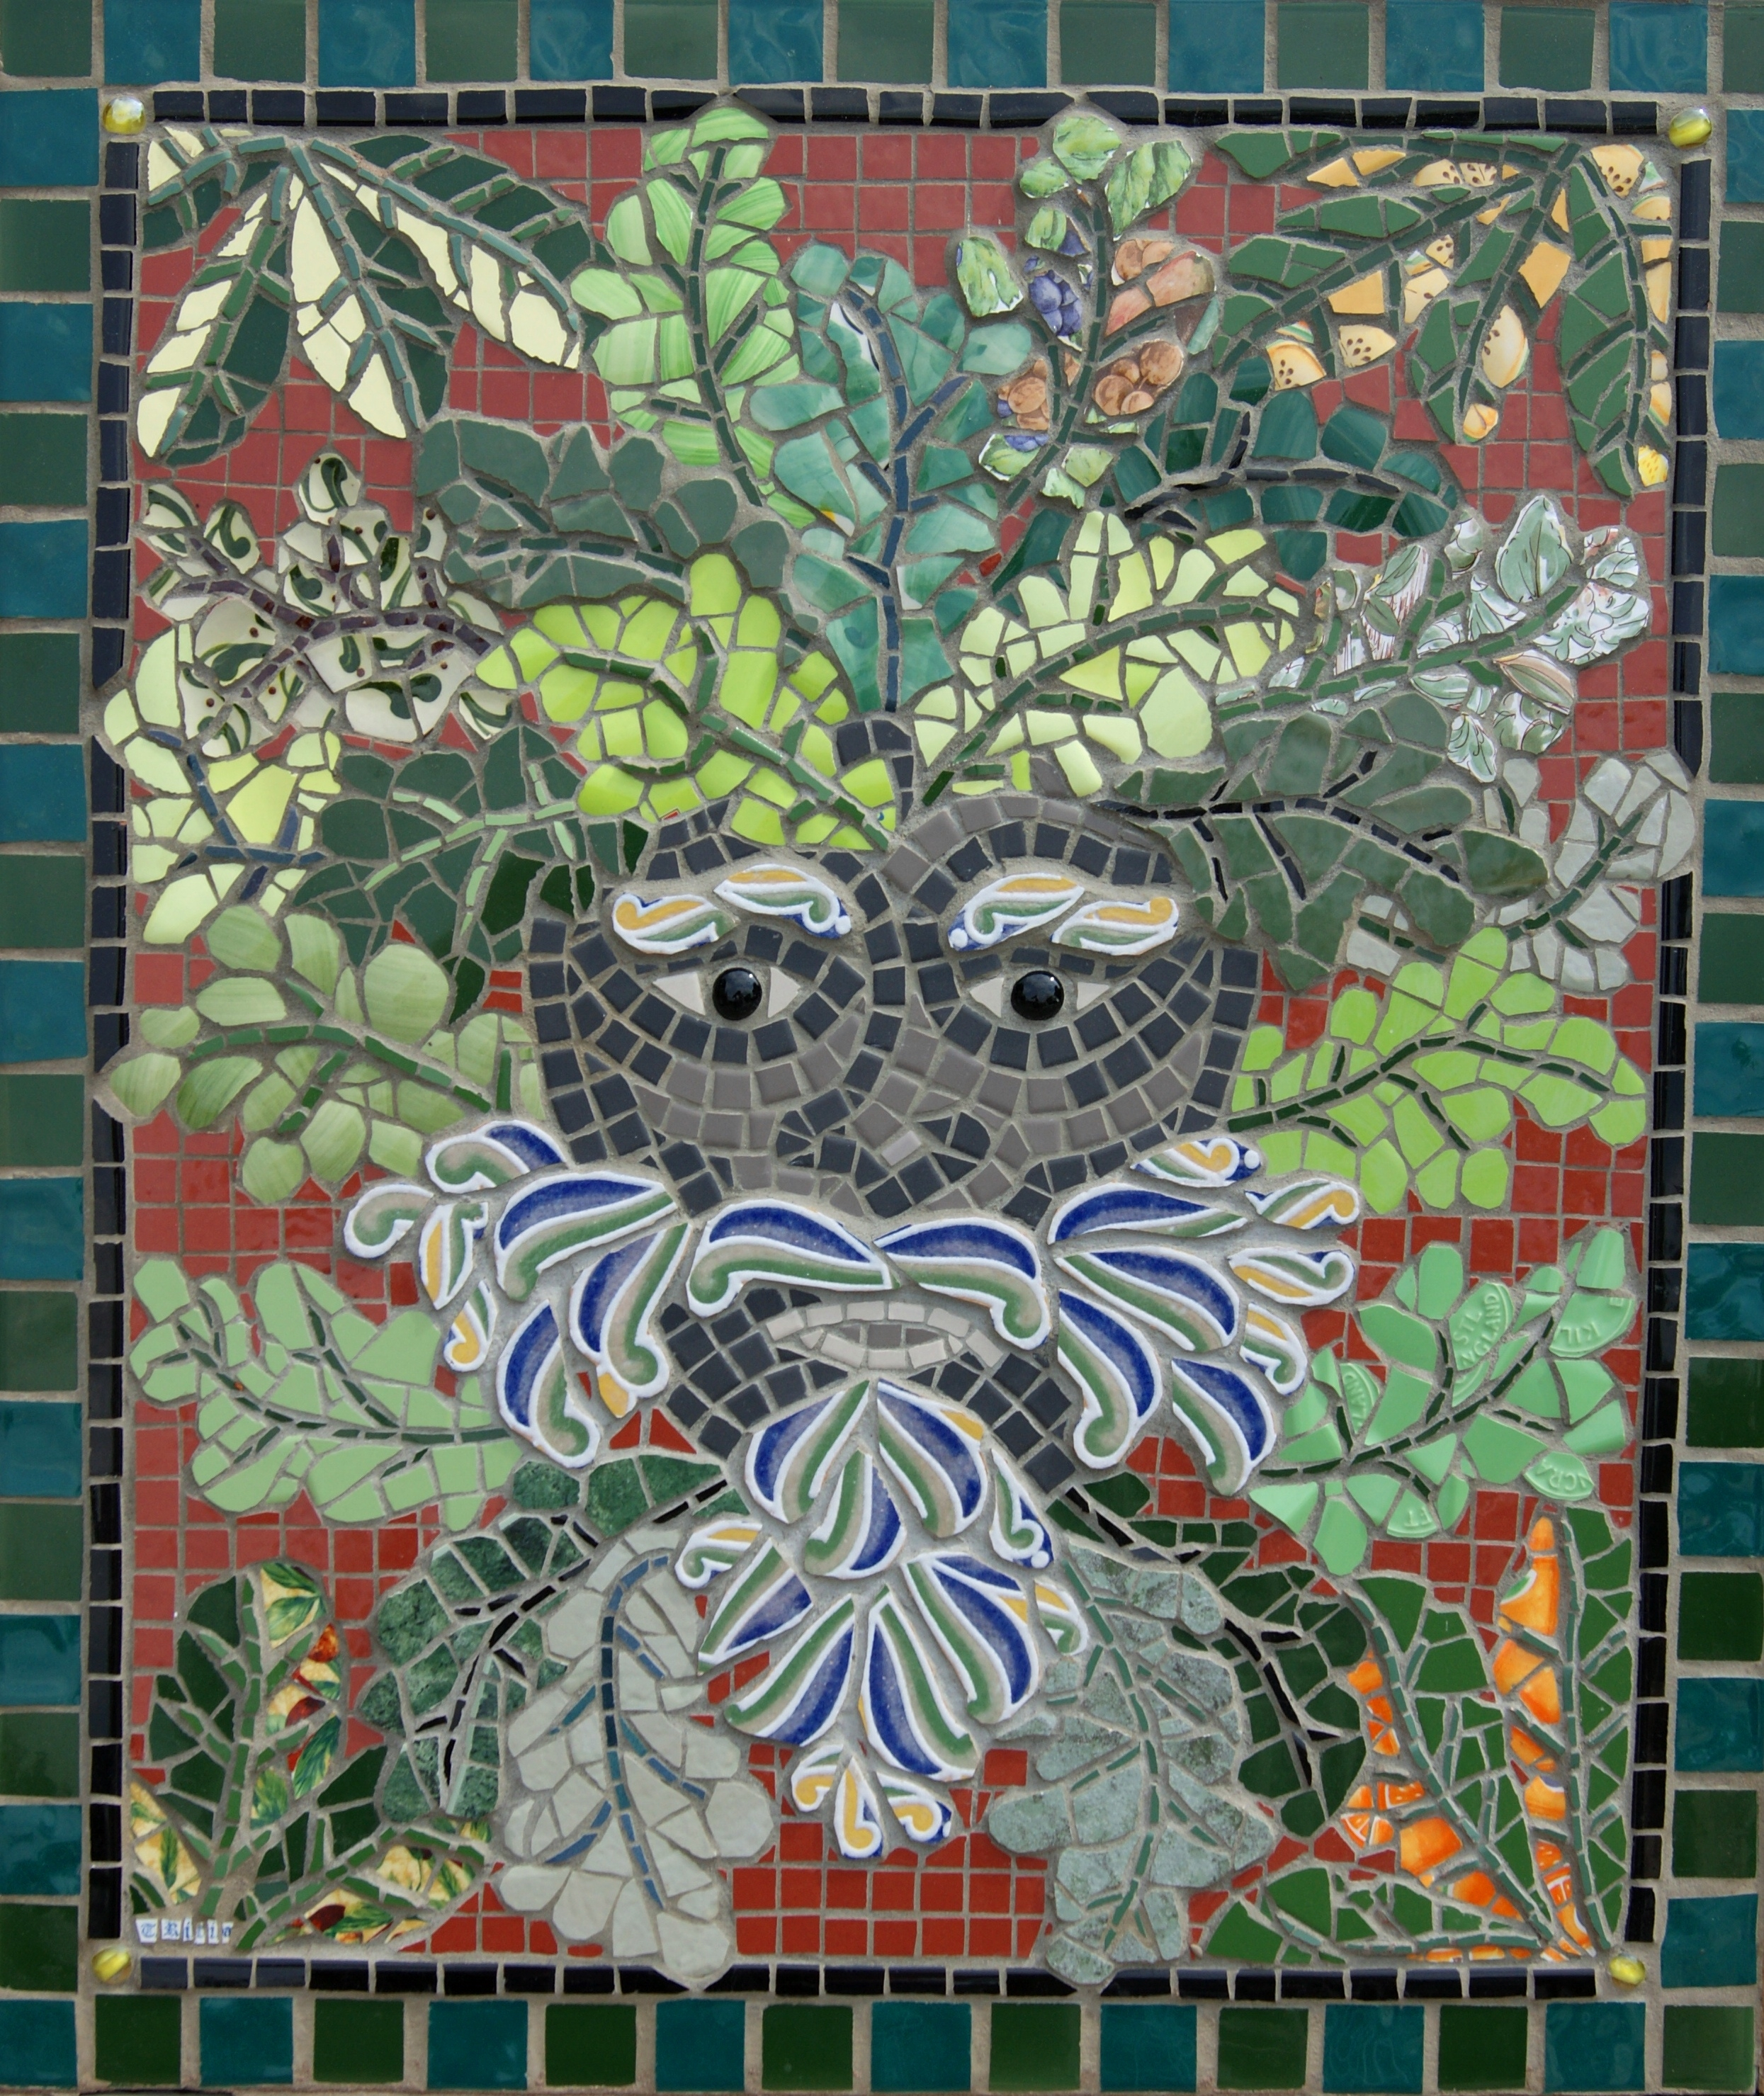 """Commission for a public house in London. This is my interpretation of the """"Green Man,"""" primarily a symbol of rebirth, or """"renaissance,"""" representing the cycle of growth being reborn anew each spring. Recycled ceramic, china, porcelain and glass beads on board. Mahogany edging. Approx. 36ins. x 24 ins."""